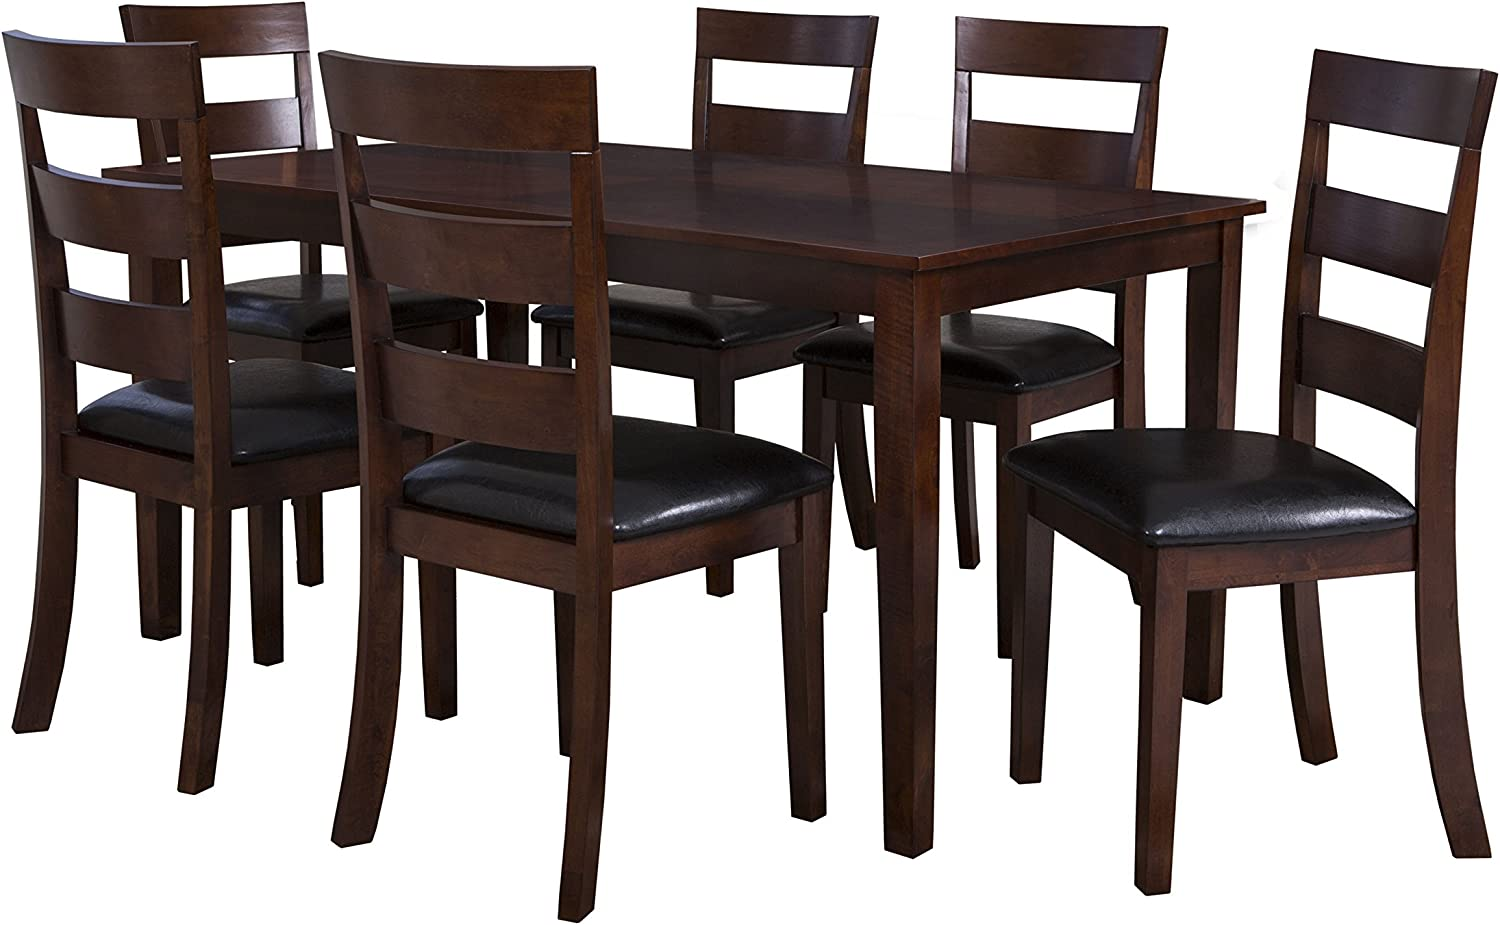 Powell's Furniture 182-730 Linville Dining Set, Cherry